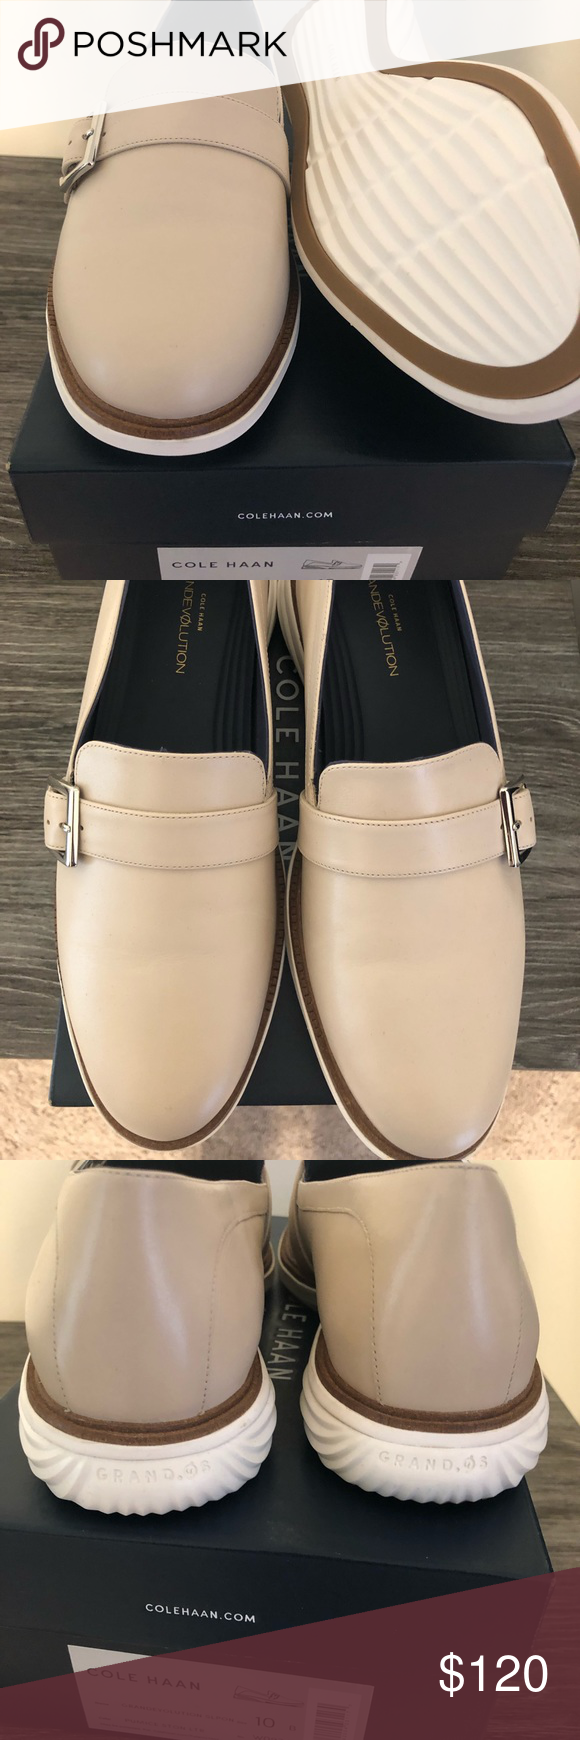 bd5b0bb7276 Brand New In Box Cole Haan Loafers Women s GrandEvølution Loafer - A next-level  integration